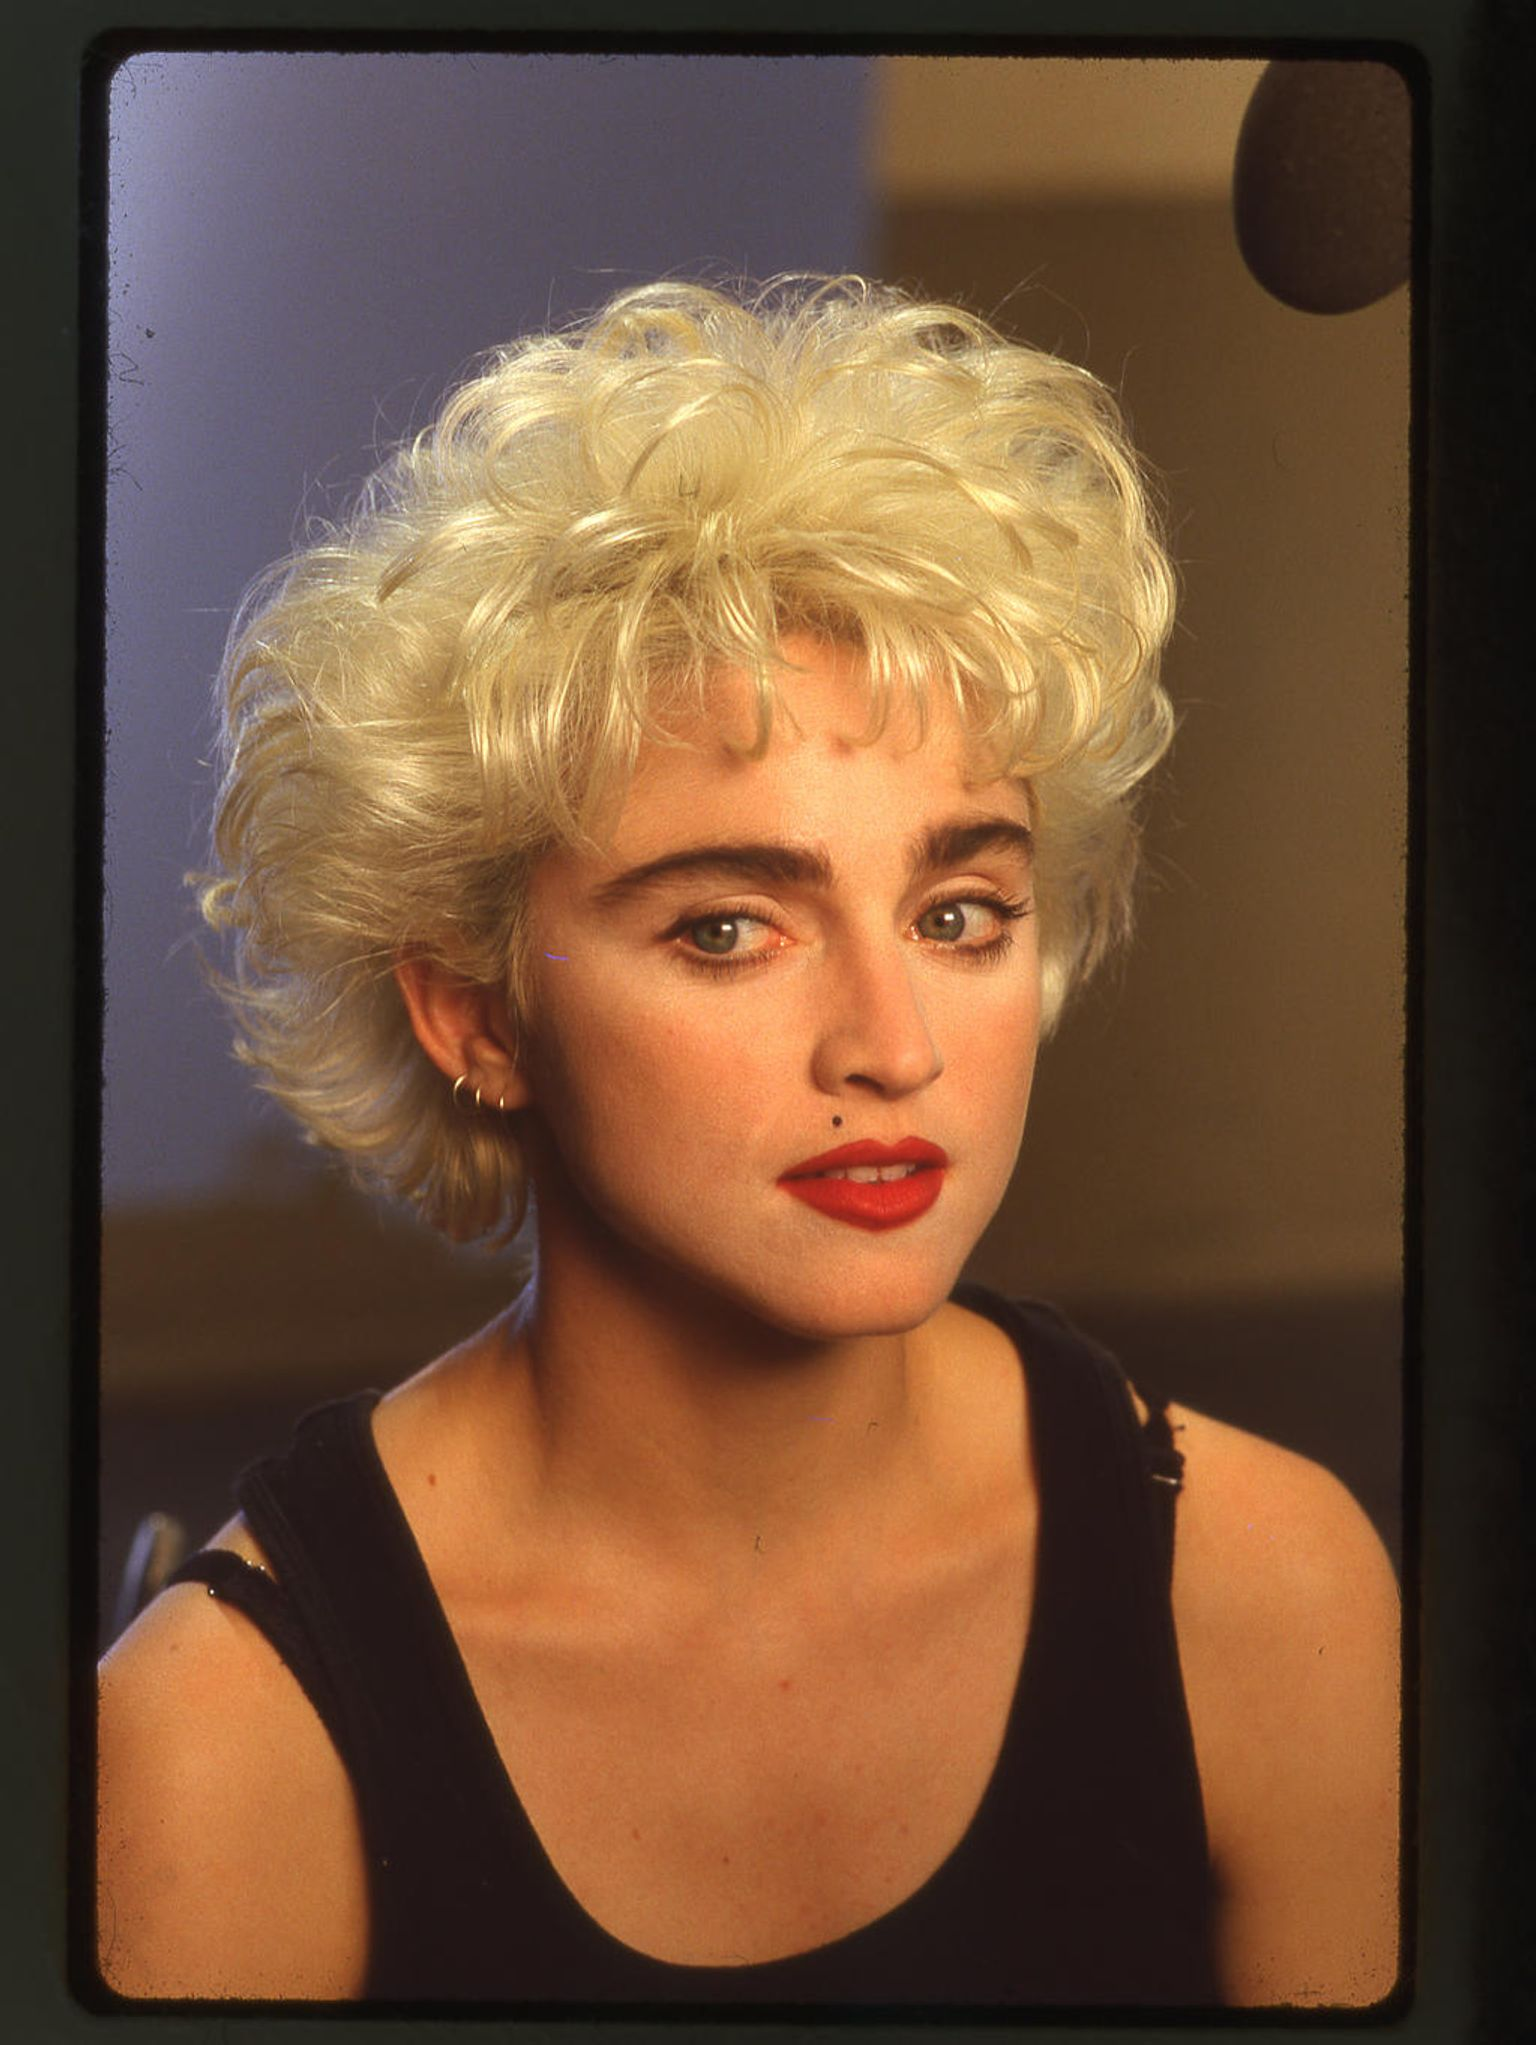 Madonna in 1986